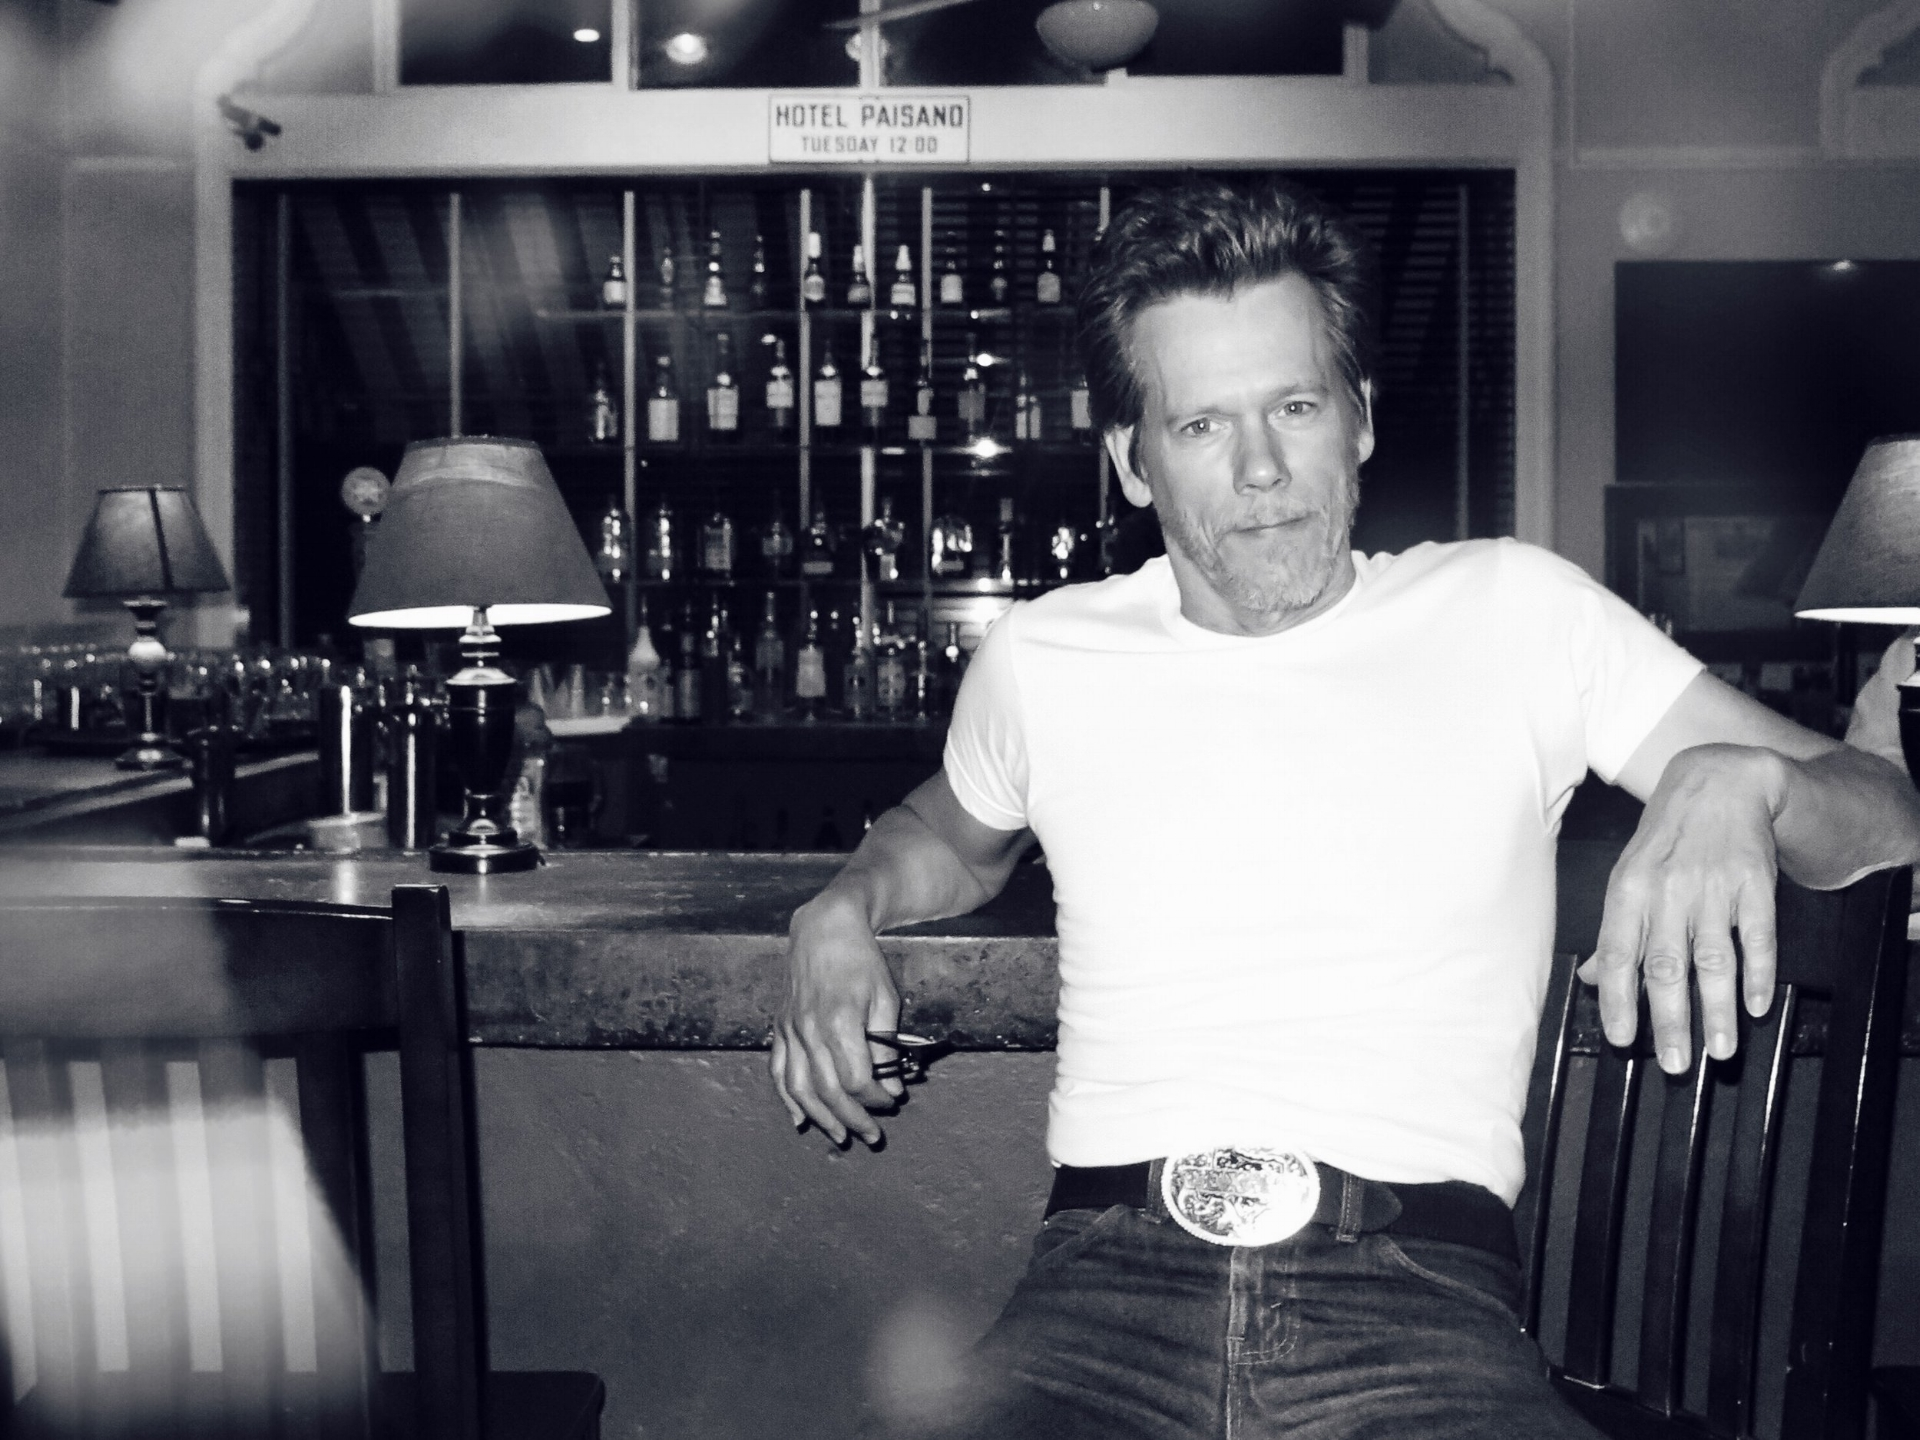 Kevin Bacon sitting at Jett's Grill before he filmed his last scene of the pilot at Hotel Paisano.